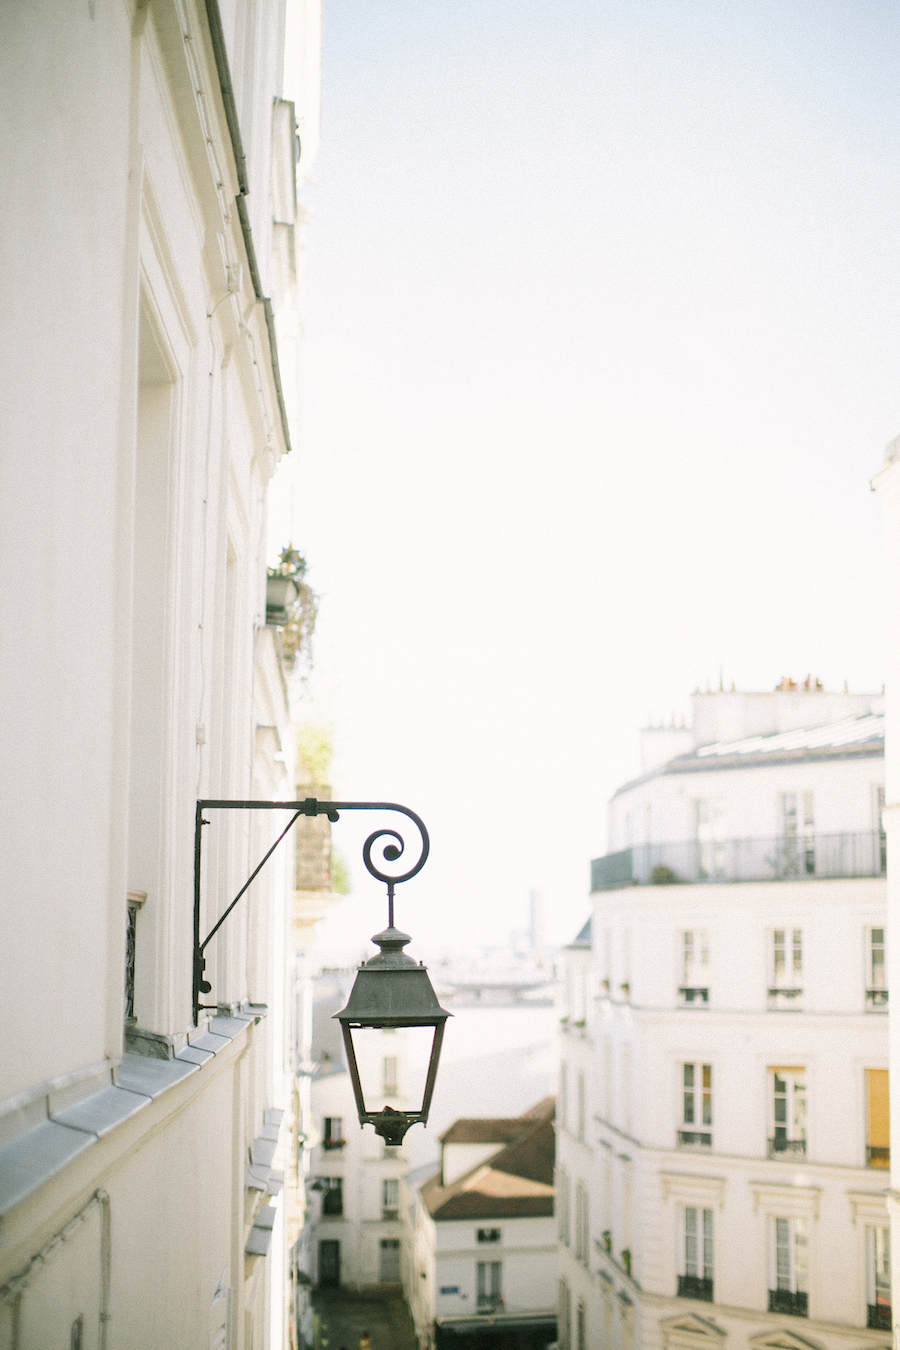 saya-photography-pre-wedding-couple-engagement-photographer-paris-montmartre-89.jpg